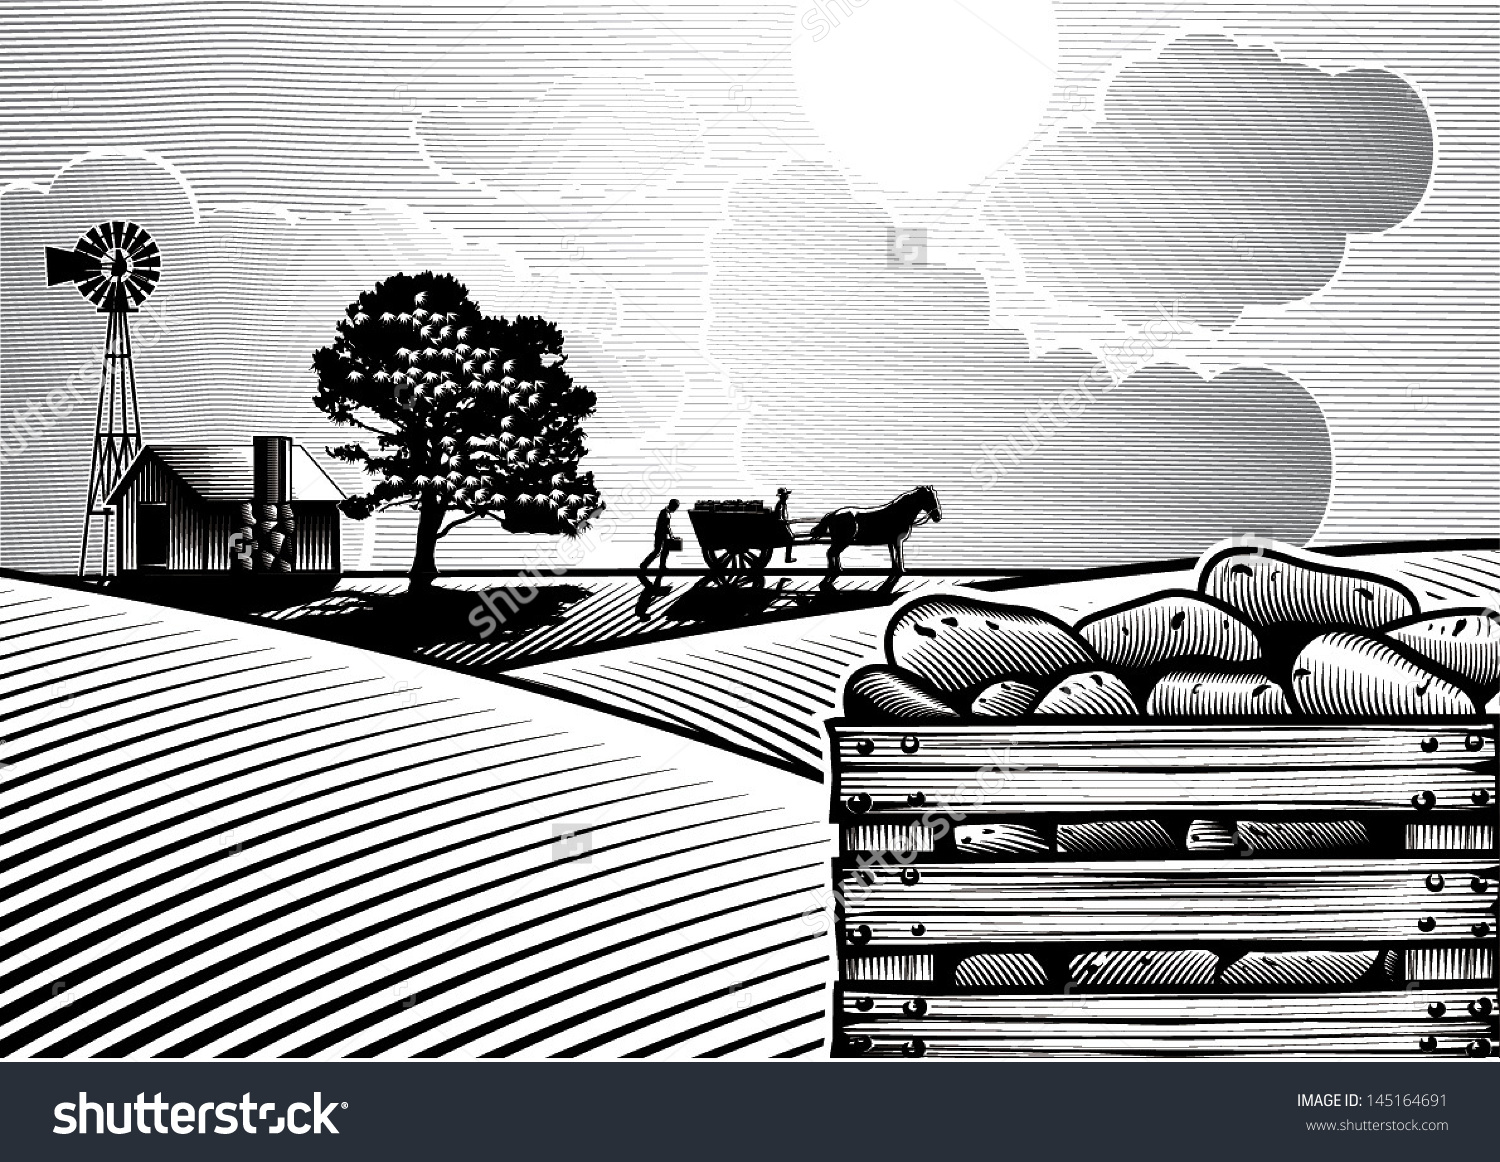 Potato Field Woodcut Style Vector Stock Vector 145164691.